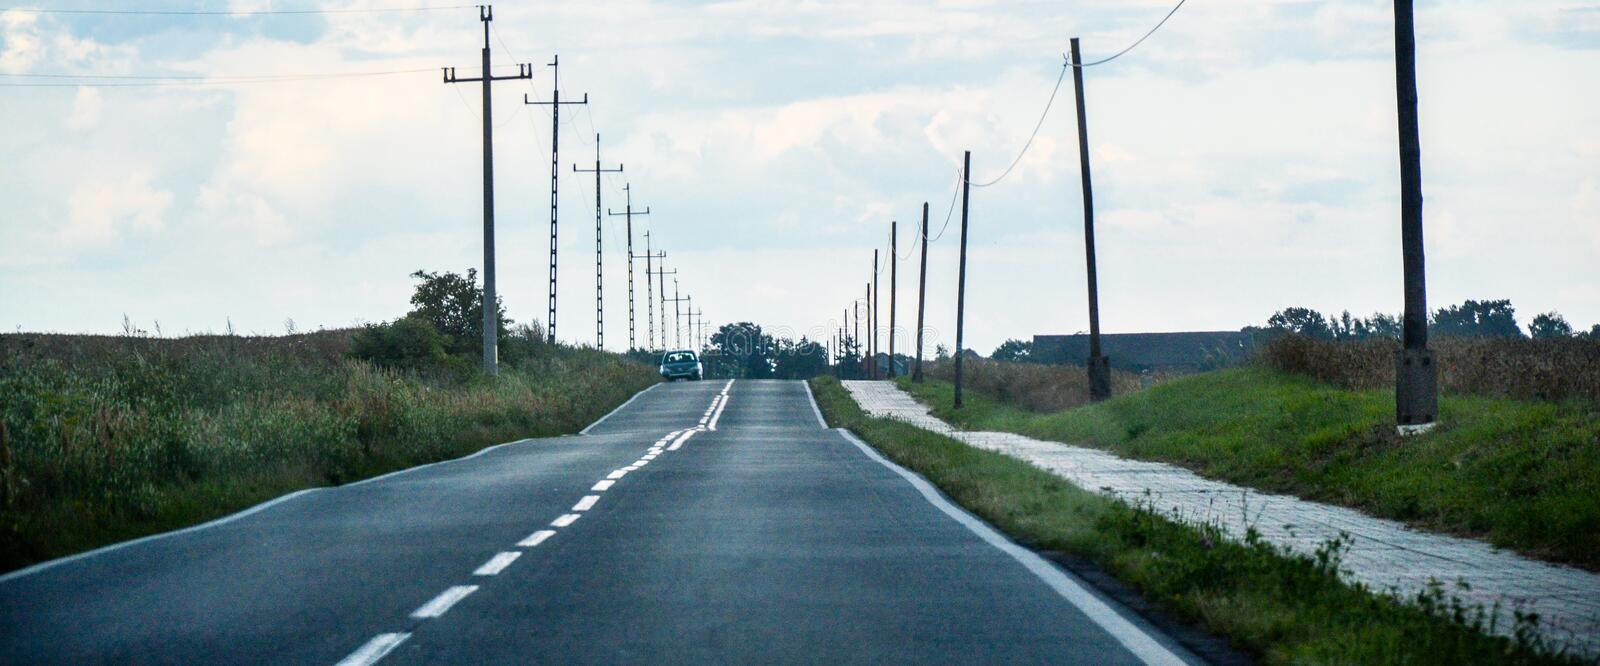 Gray Asphalt Road Between Green Grass And Gray Electric Post During Daytime Free Public Domain Cc0 Image